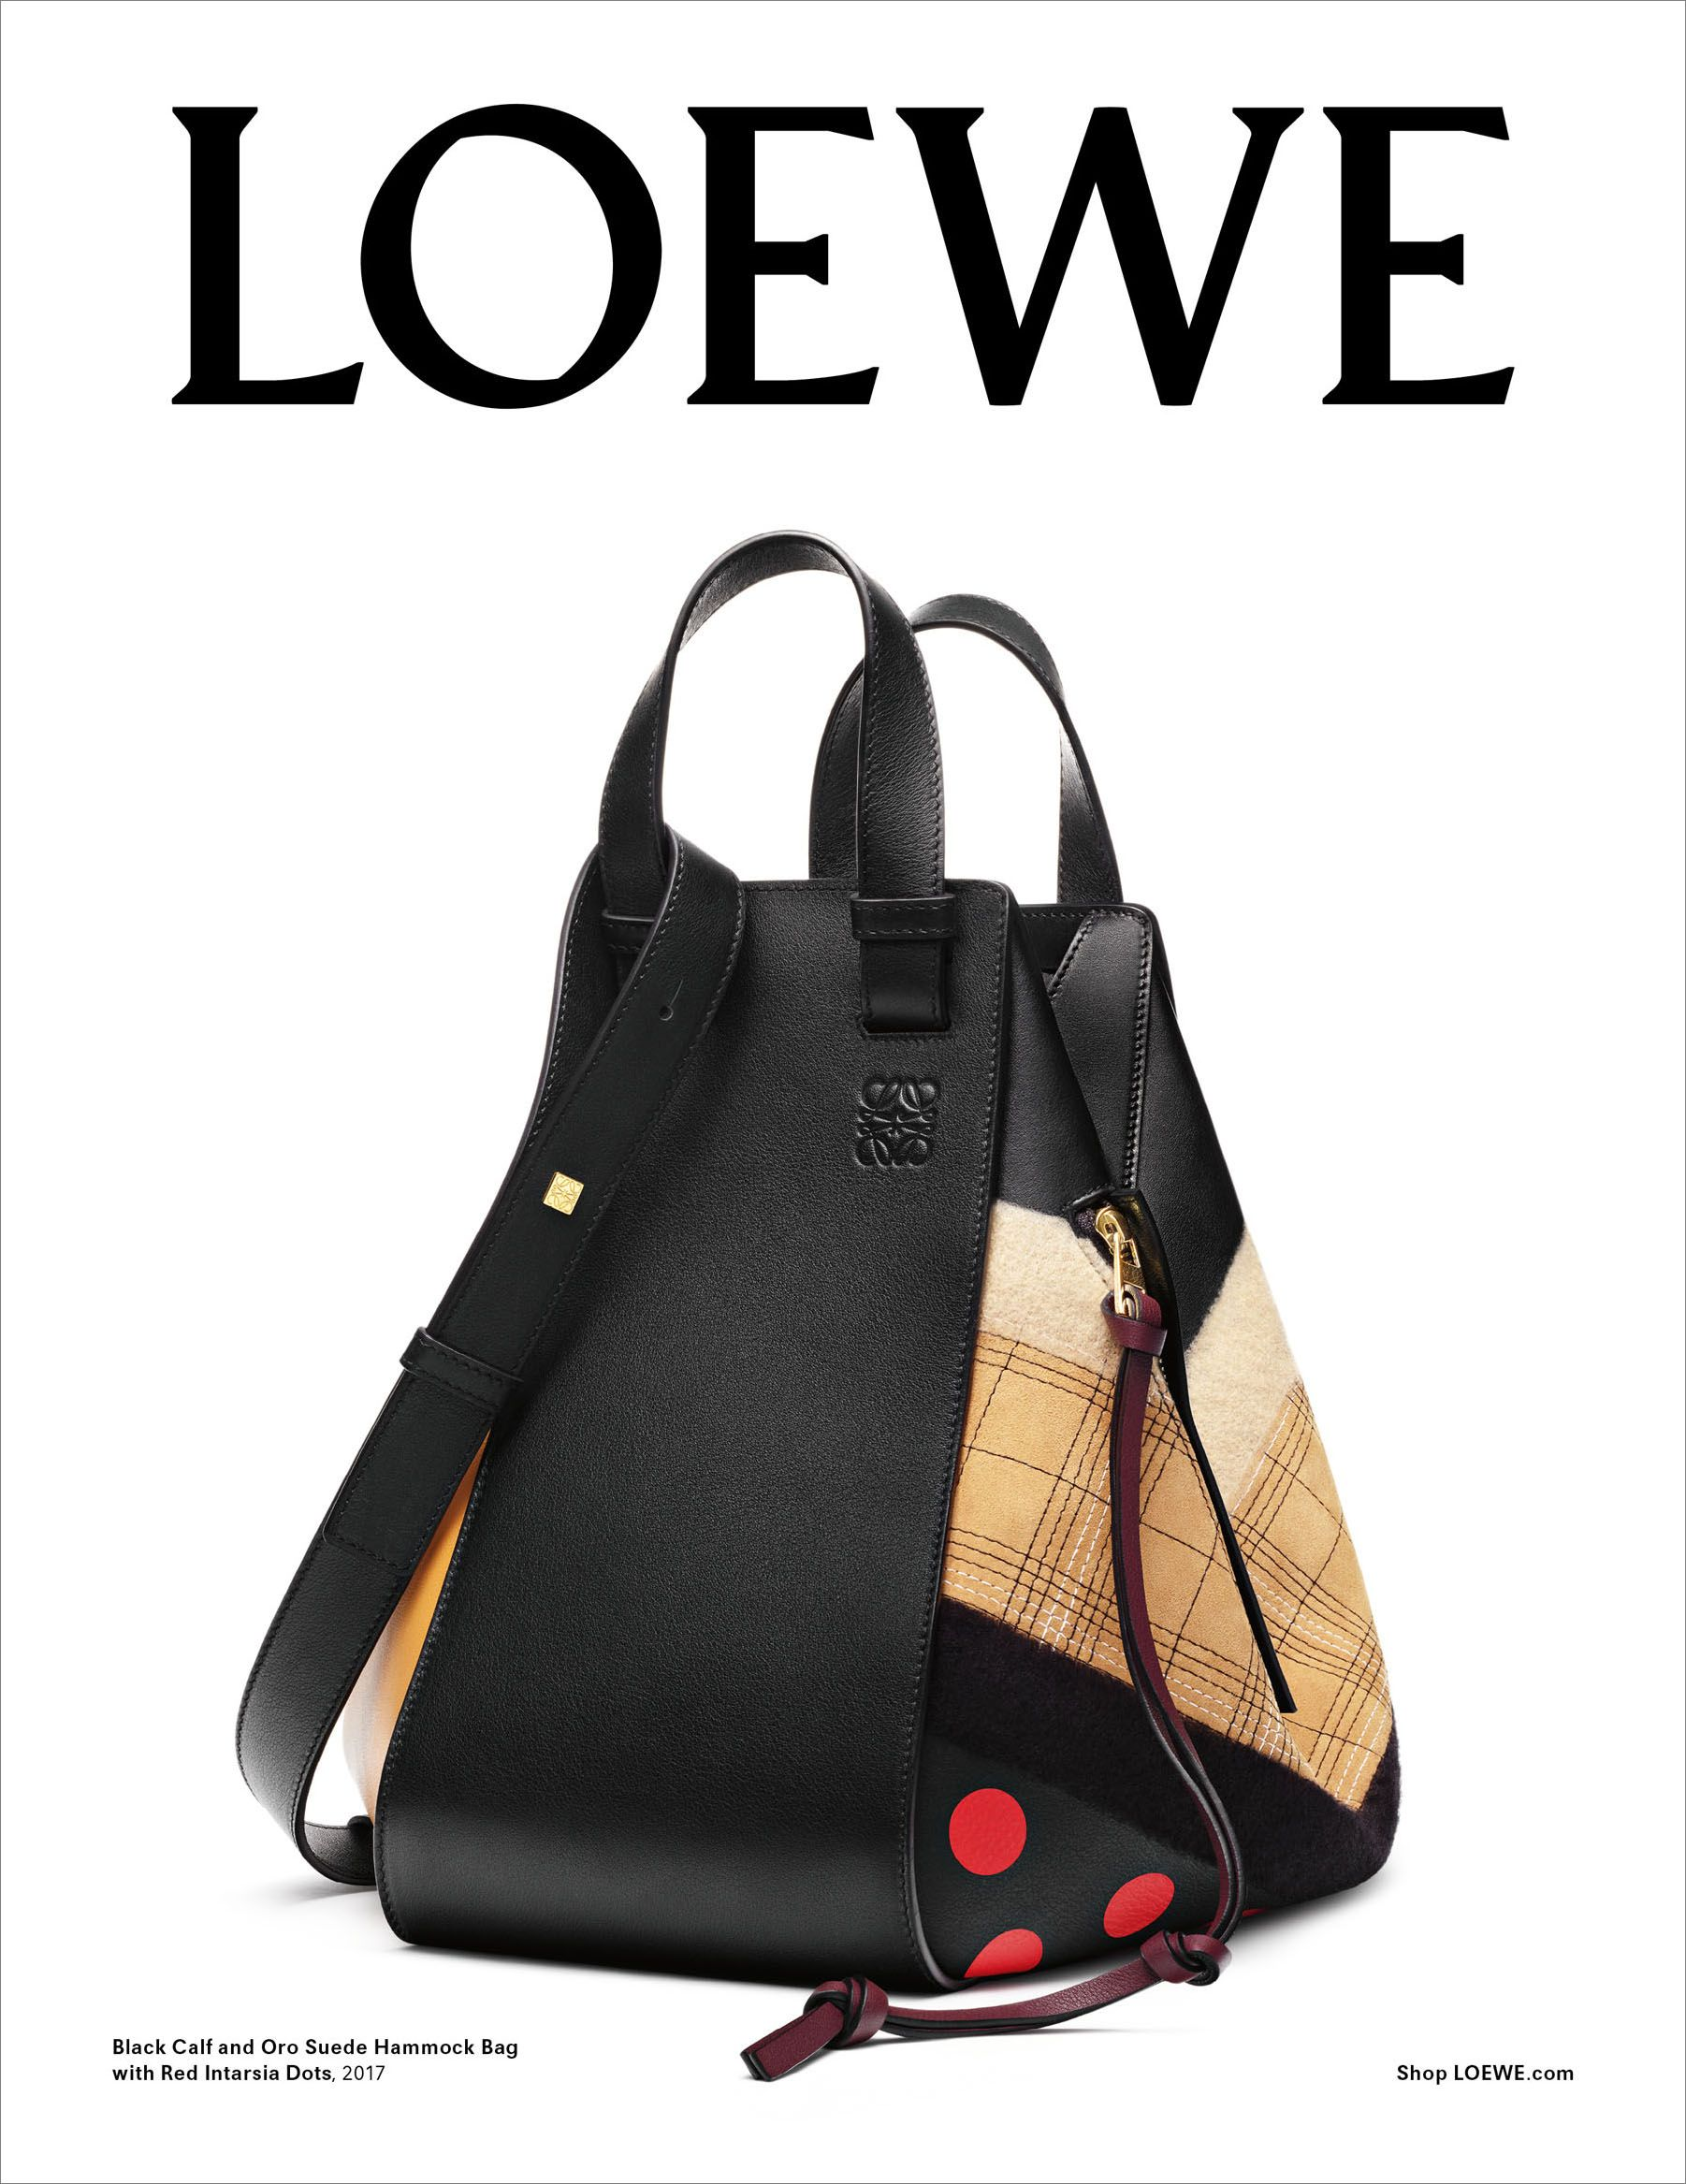 Loewe's Fall 2017 Ad Campaign, Agency M/M Paris with photographer Steven  Meisel shot